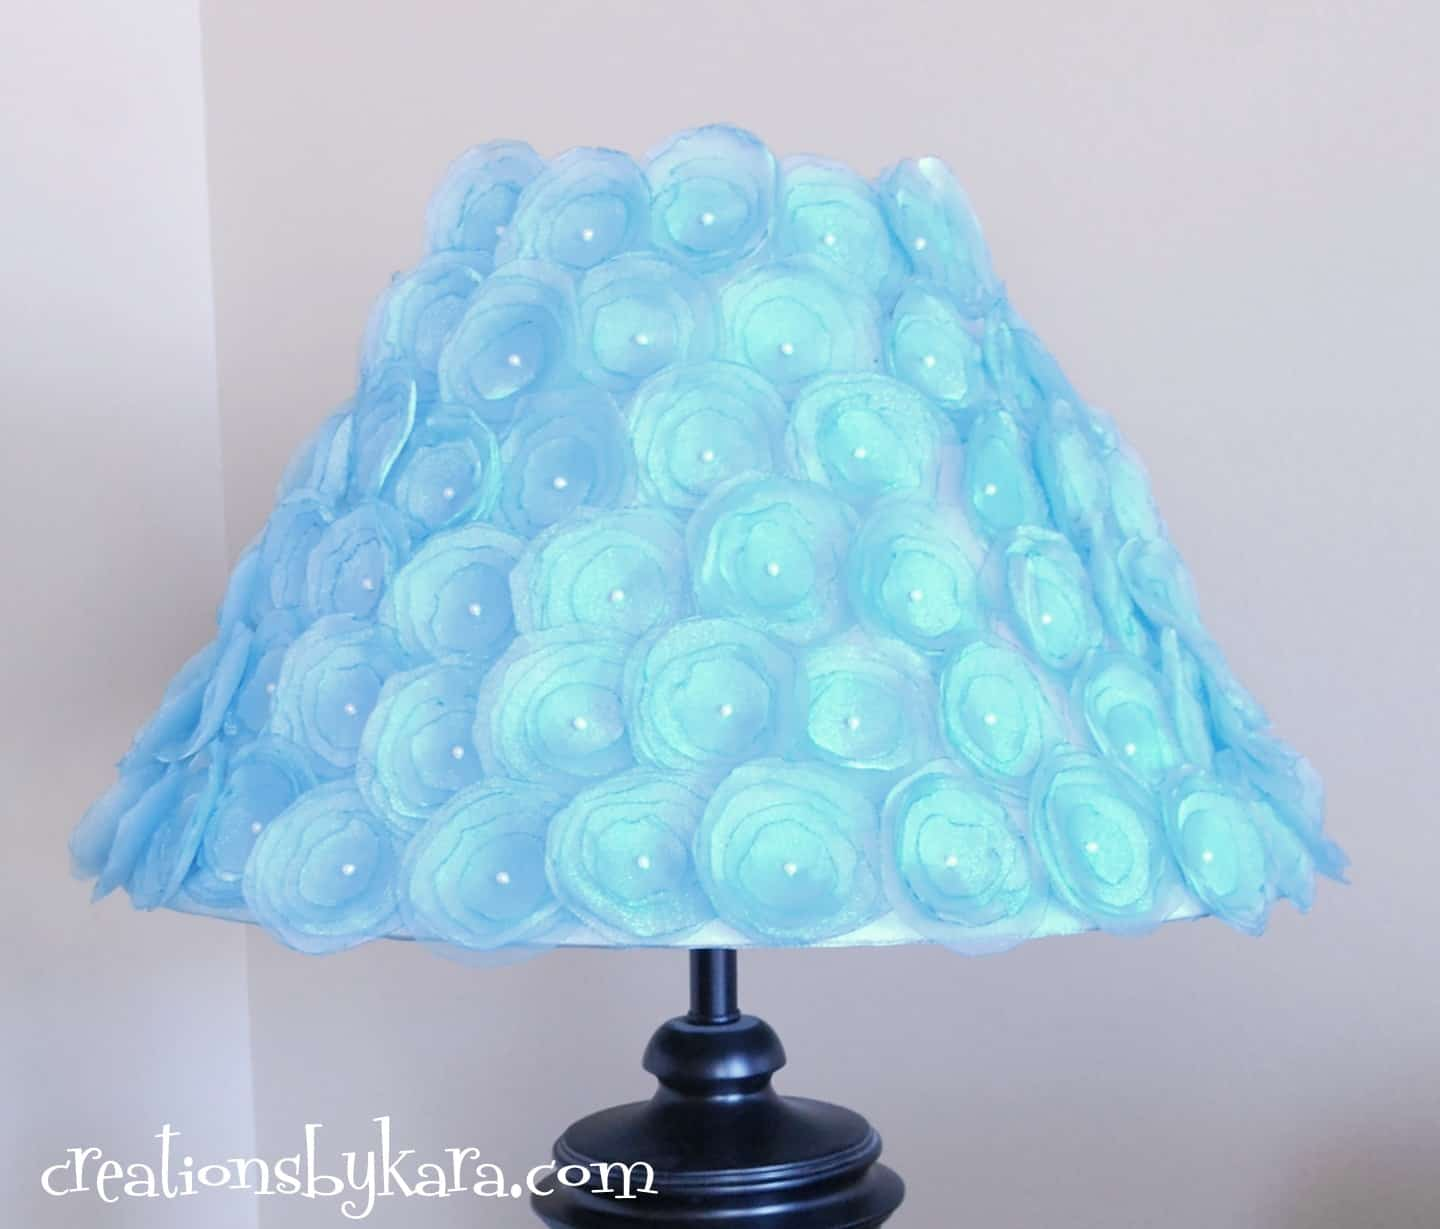 Flower Lampshade Thrifty Decorating Creations By Kara